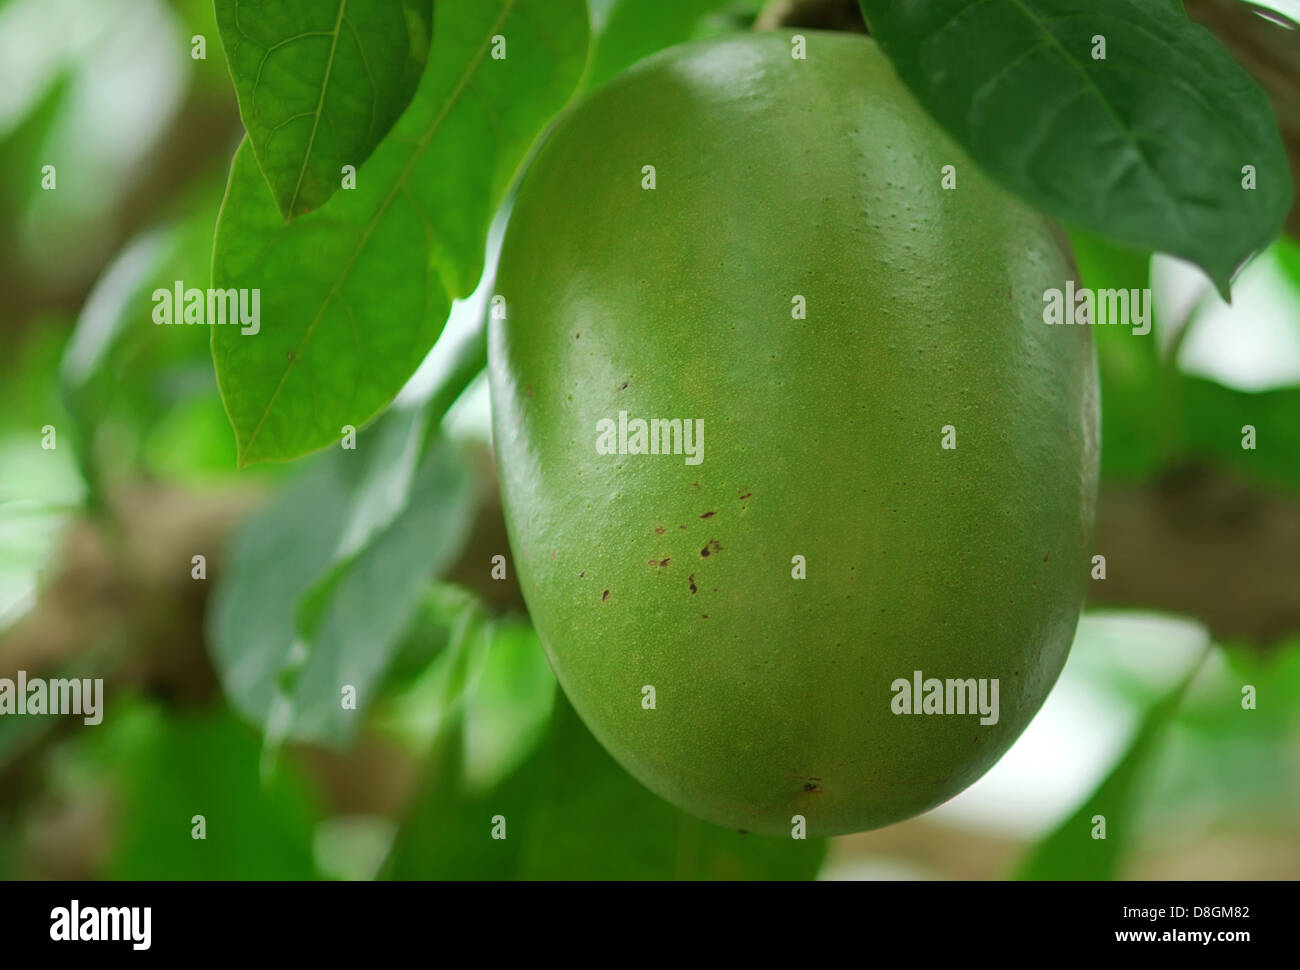 calabash tree - Stock Image